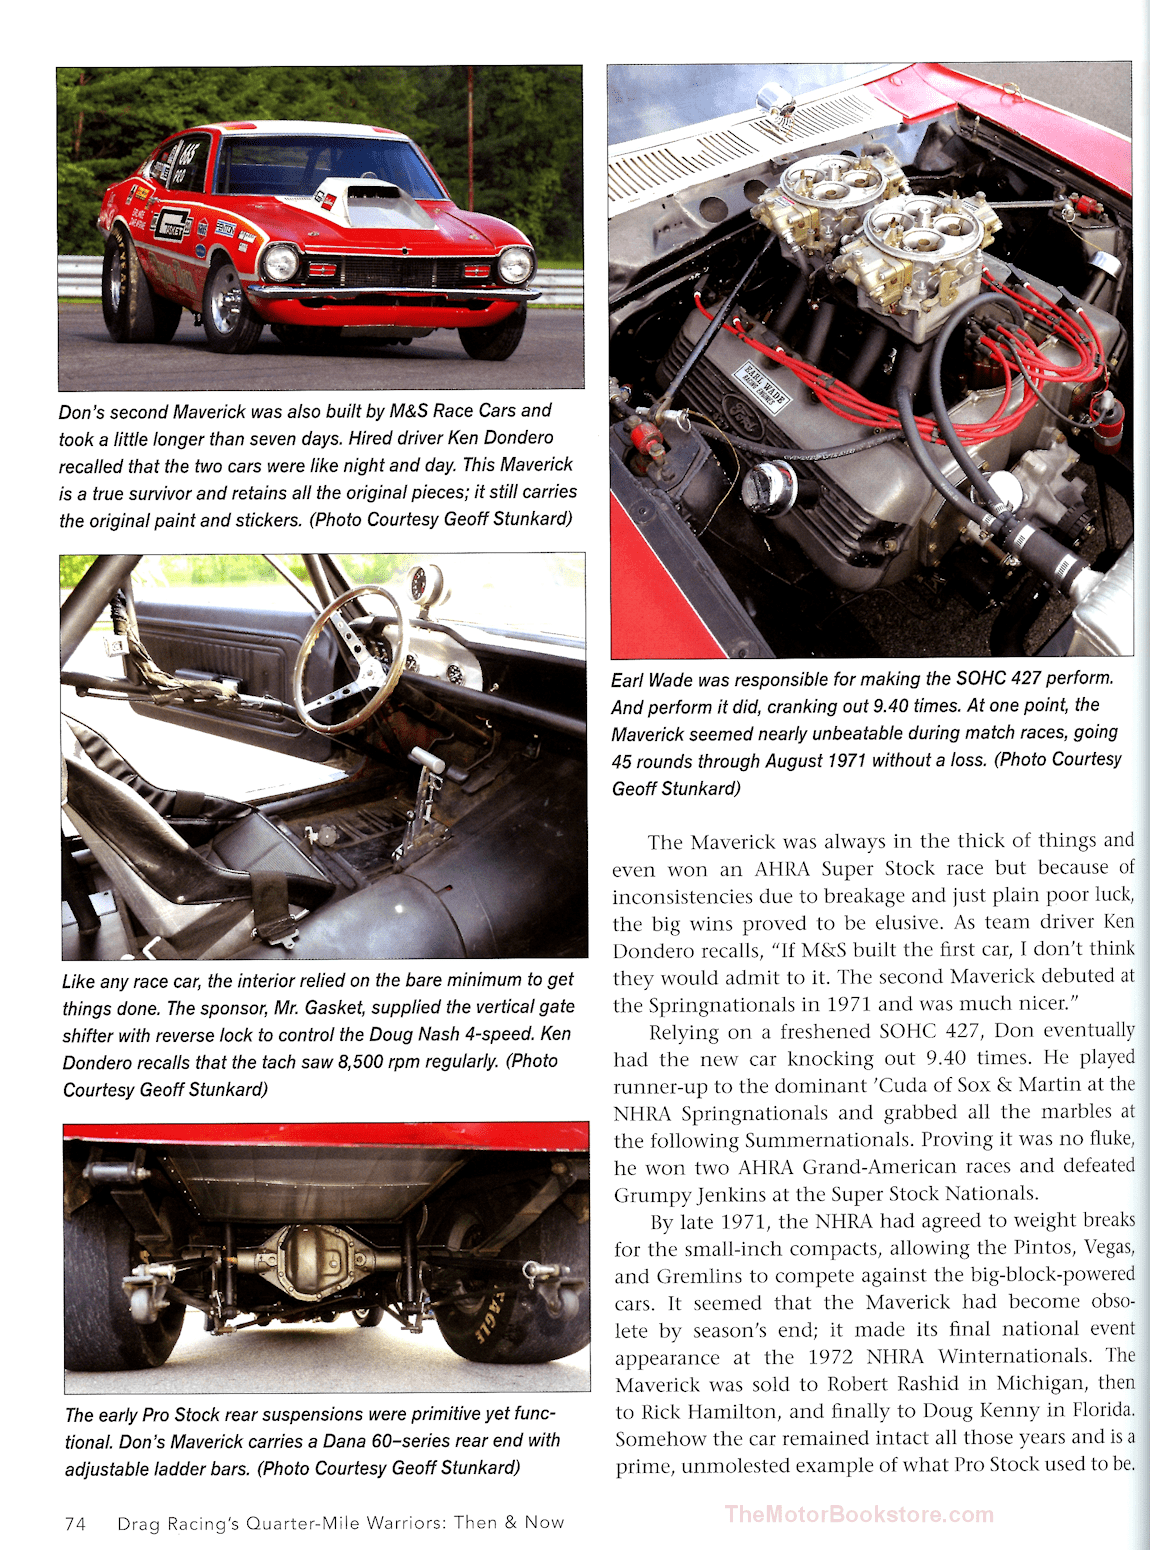 Drag Racing's Quarter-Mile Warriors Then & Now Sample Page - Don Nicholson's 1970 Maverick - CT528